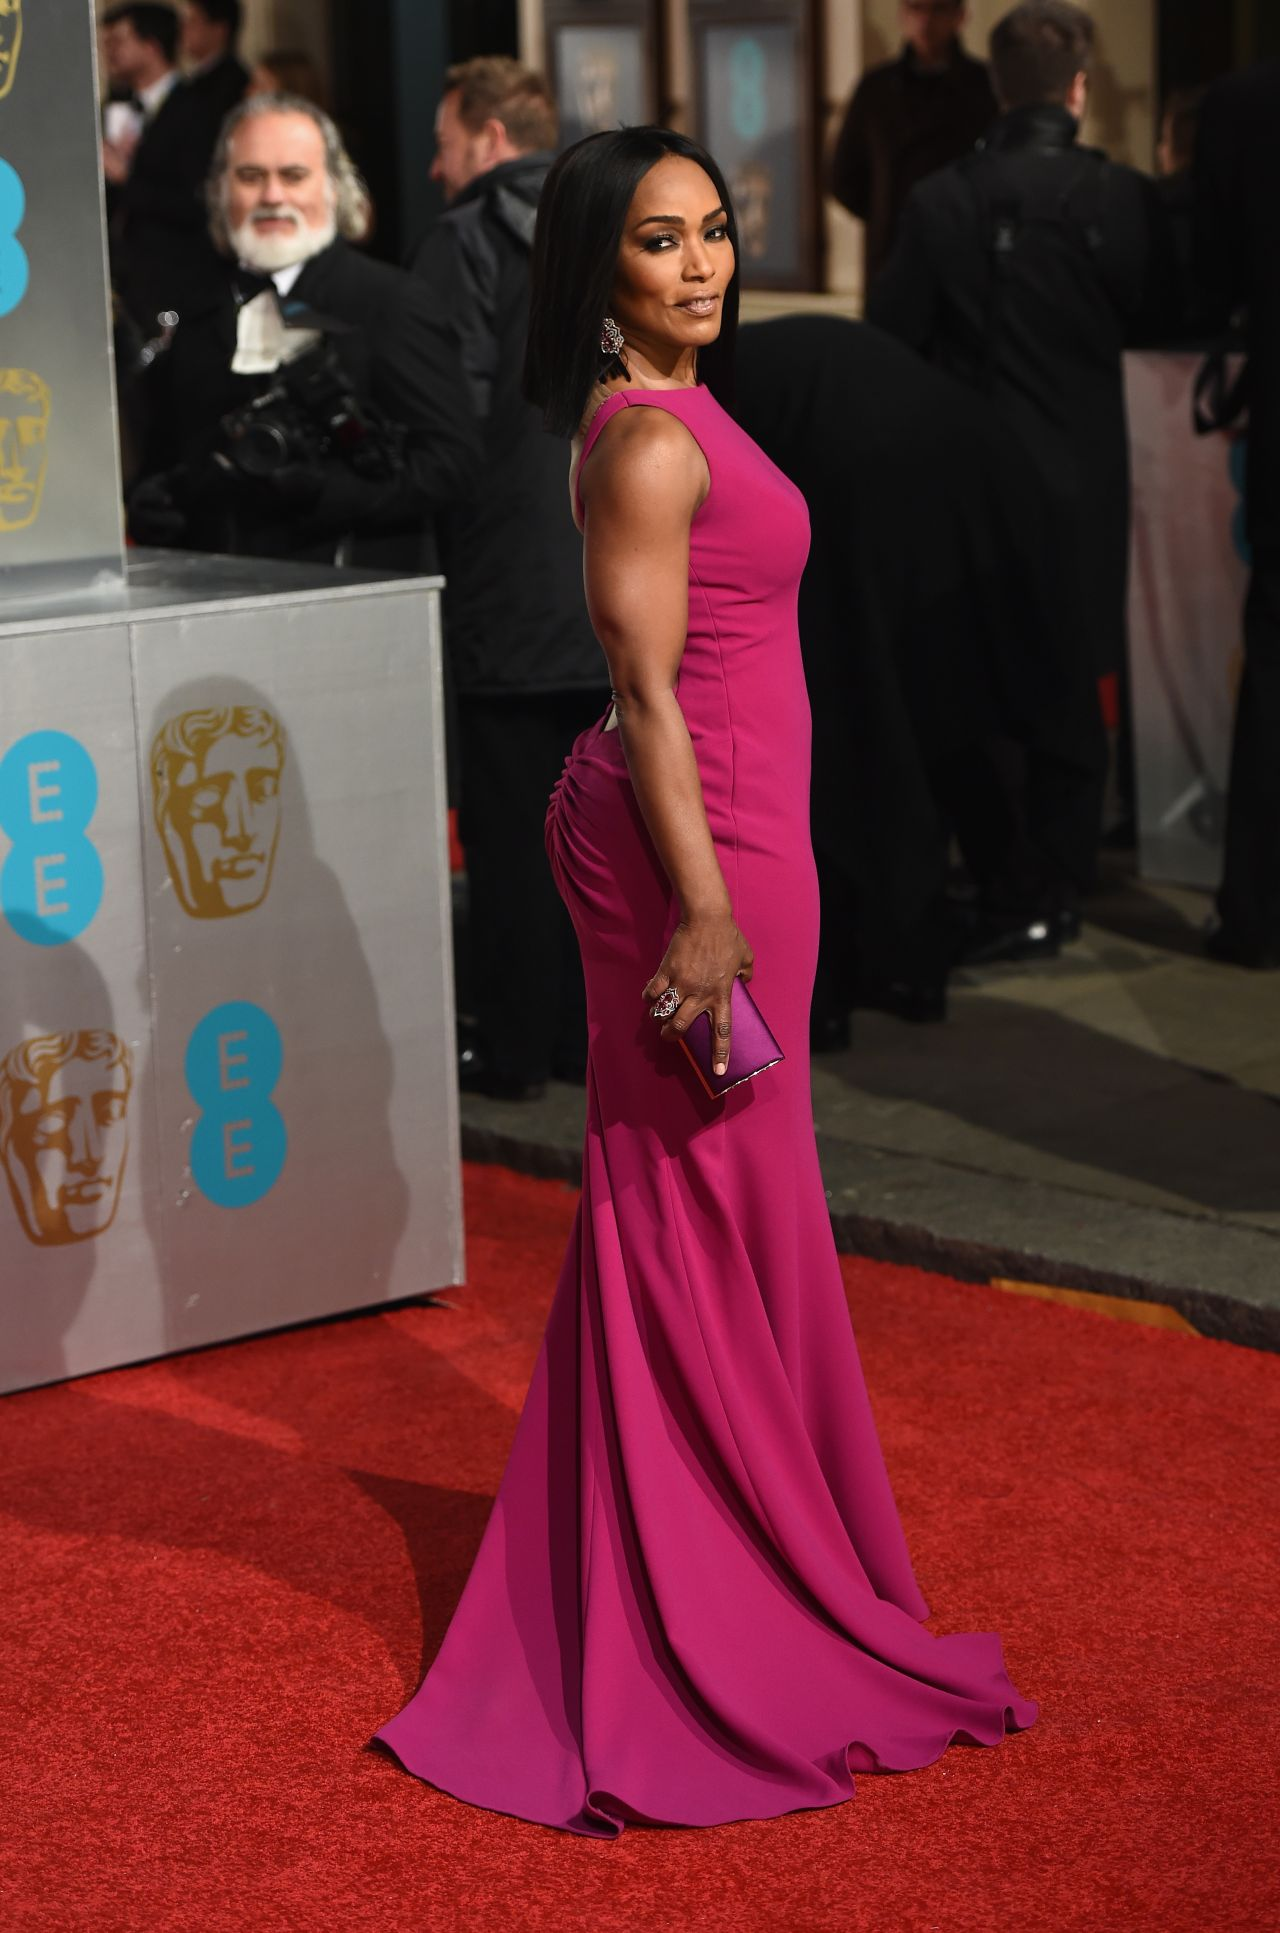 angela-bassett-bafta-film-awards-2016-in-london-5